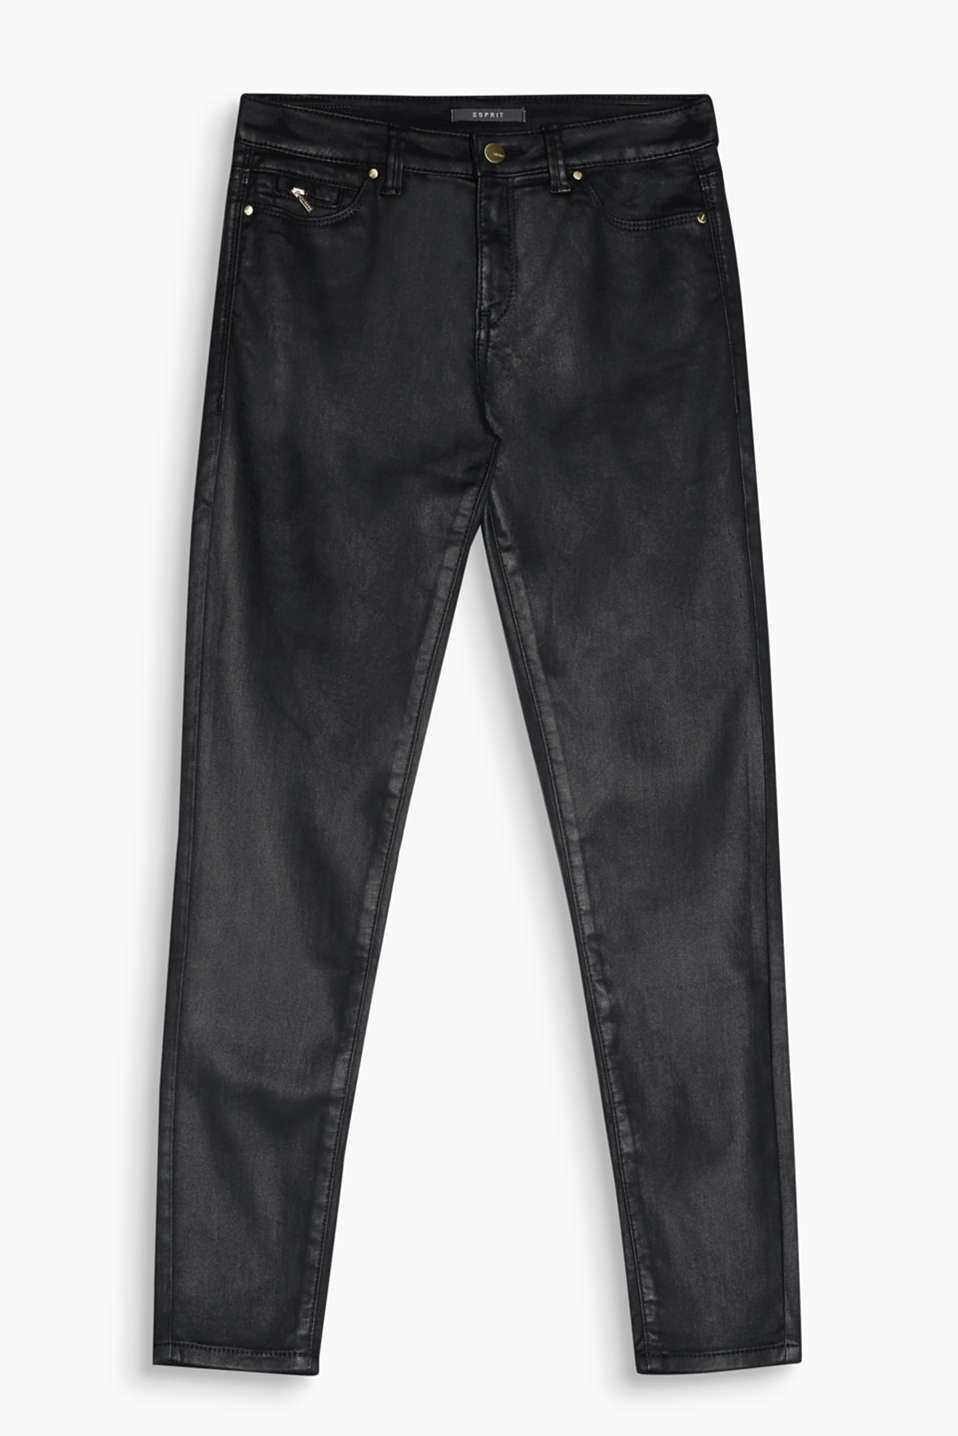 Push-up effect for the bum: these slim-fitting, coated stretch jeans with a lift-up effect create a sexy, skin-tight look!